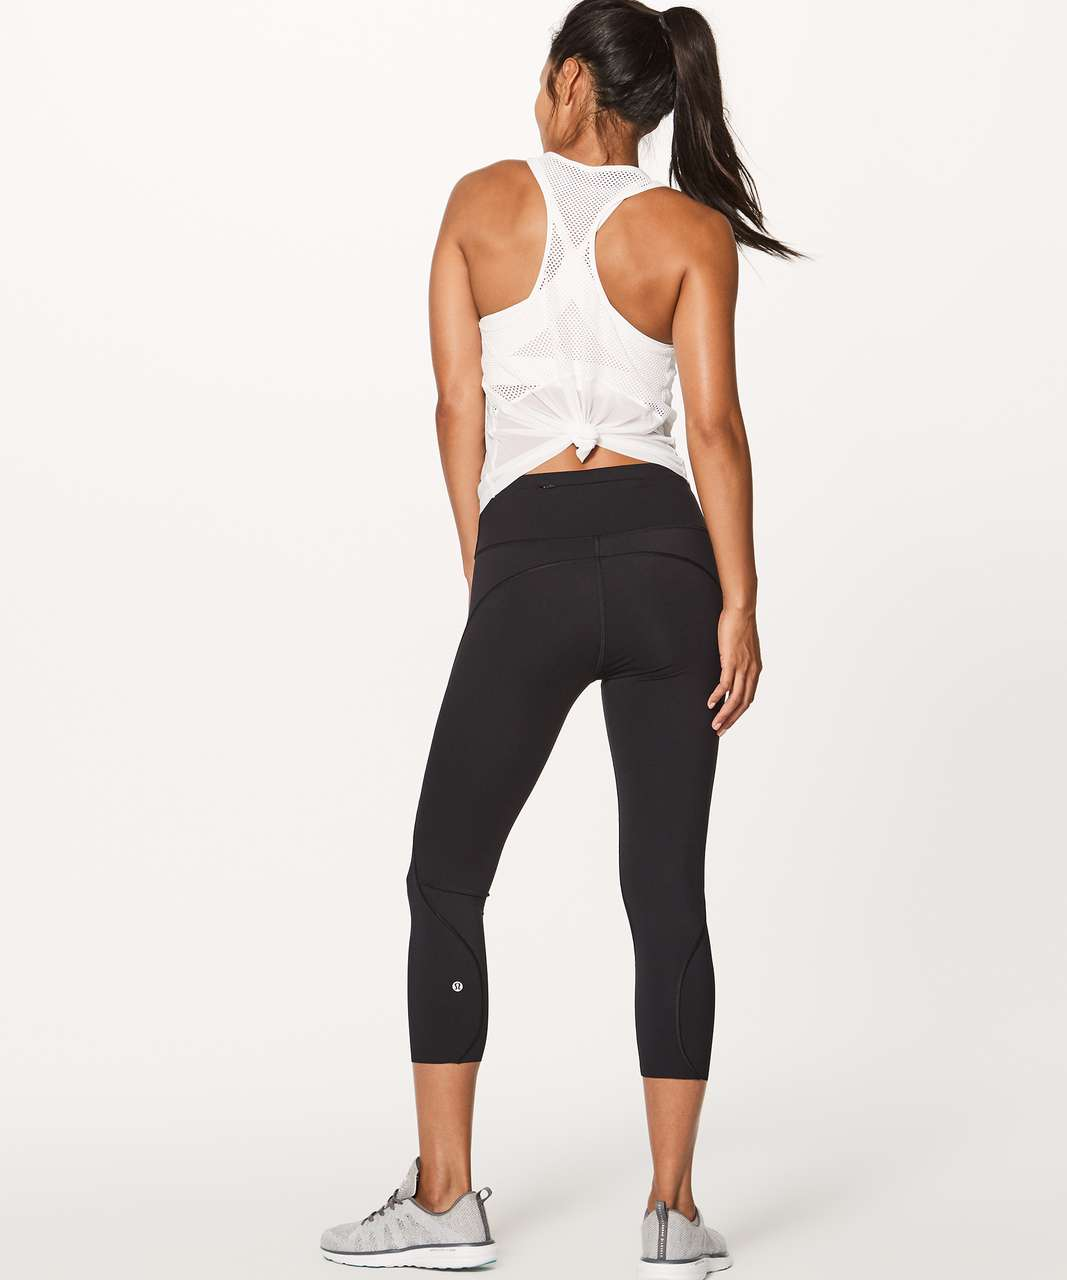 ae2d518e41 Lululemon Run The Day Crop (17